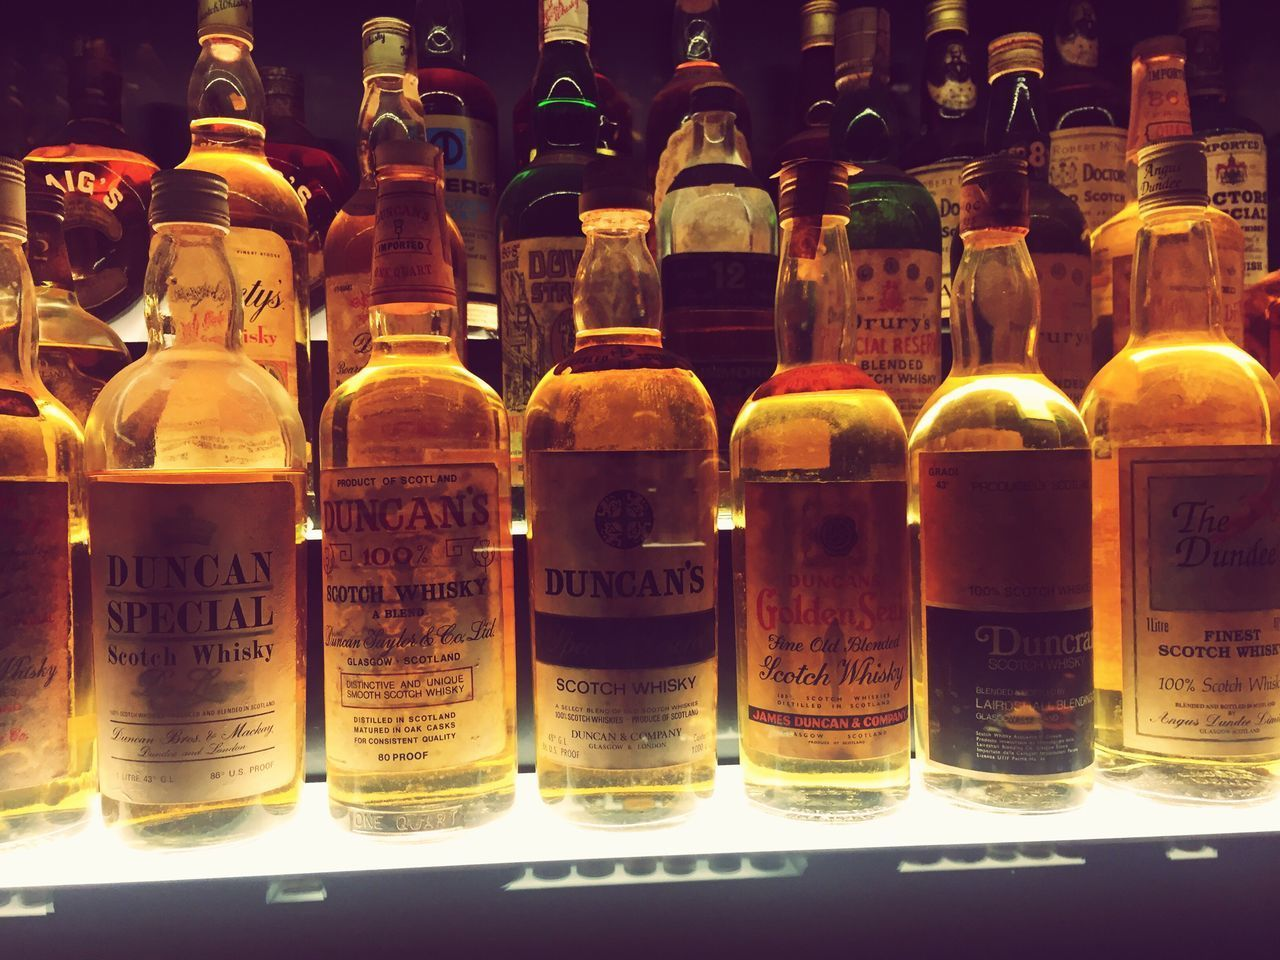 Bottle In A Row Large Group Of Objects Shelf No People Text Whisky Tasting Scotch Whisky Scotch Illuminated Bottles Collection Whiskey C Whisky